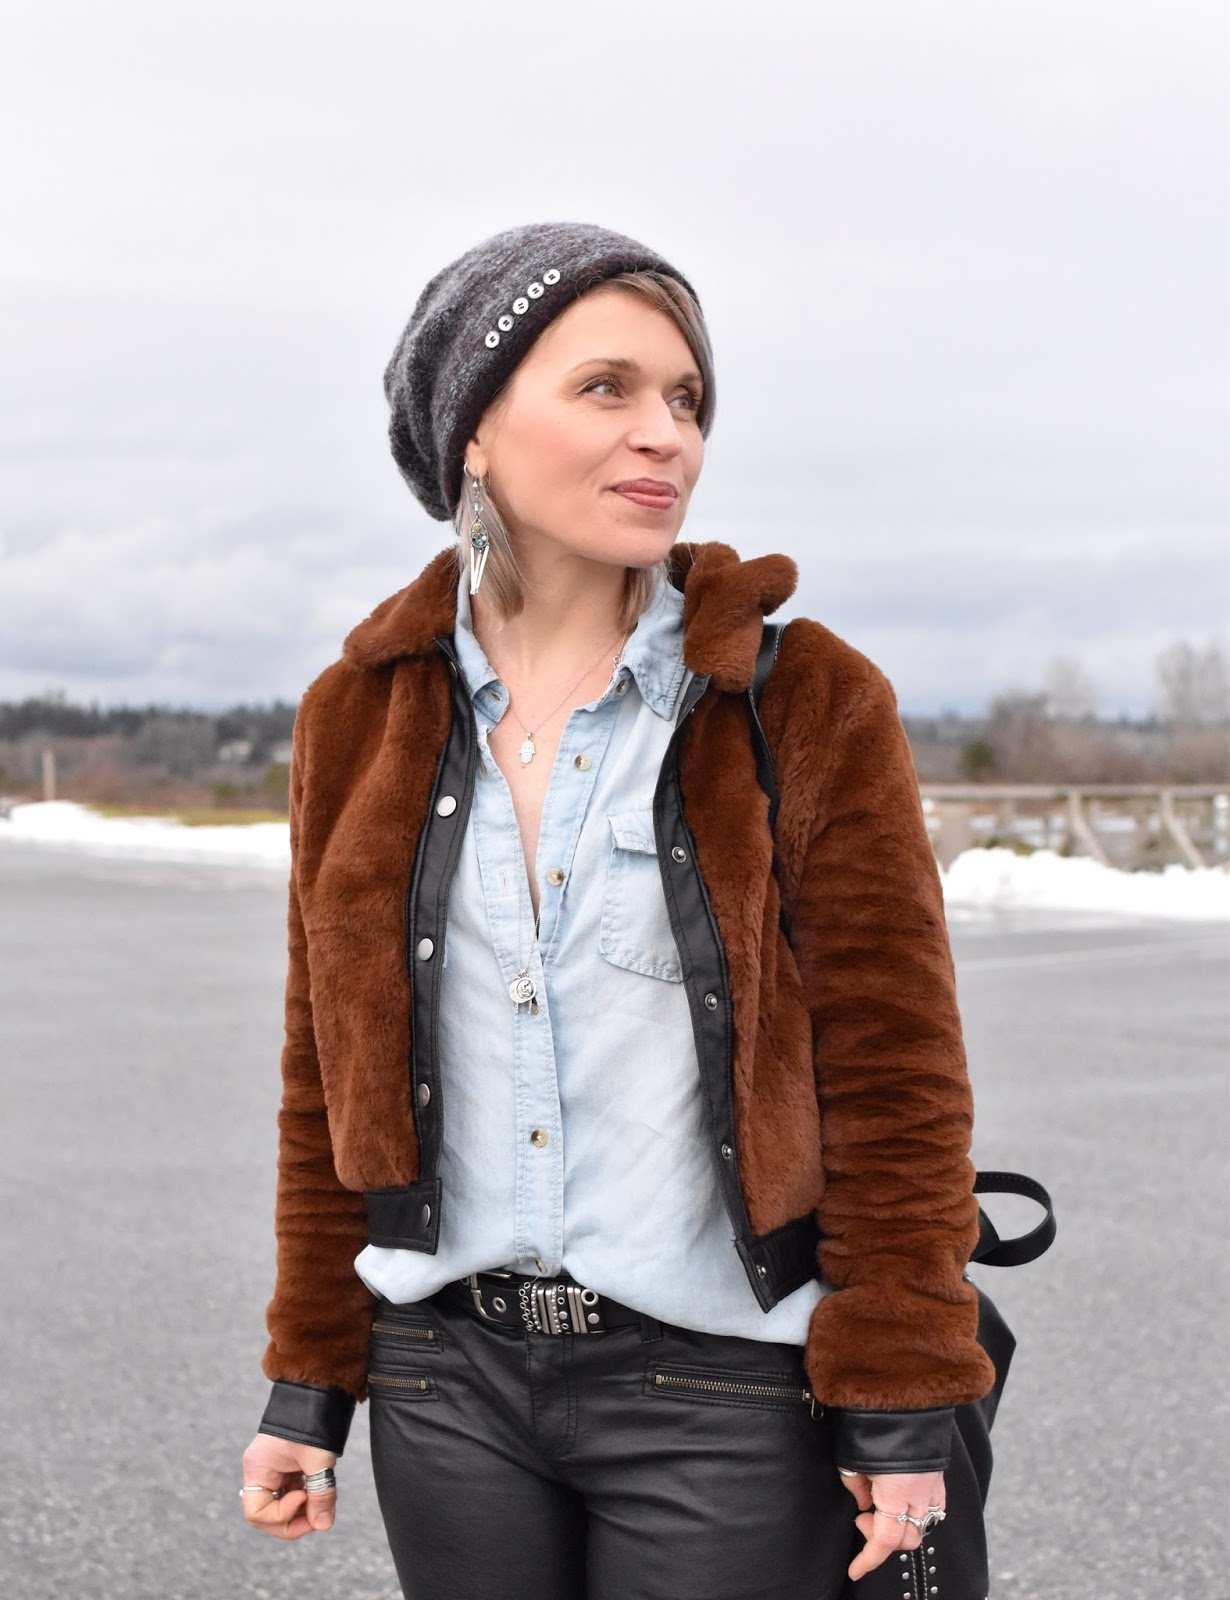 Monika Faulkner outfit inspiration - chambray shirt, vegan leather jeans, furry bomber, woolen beanie